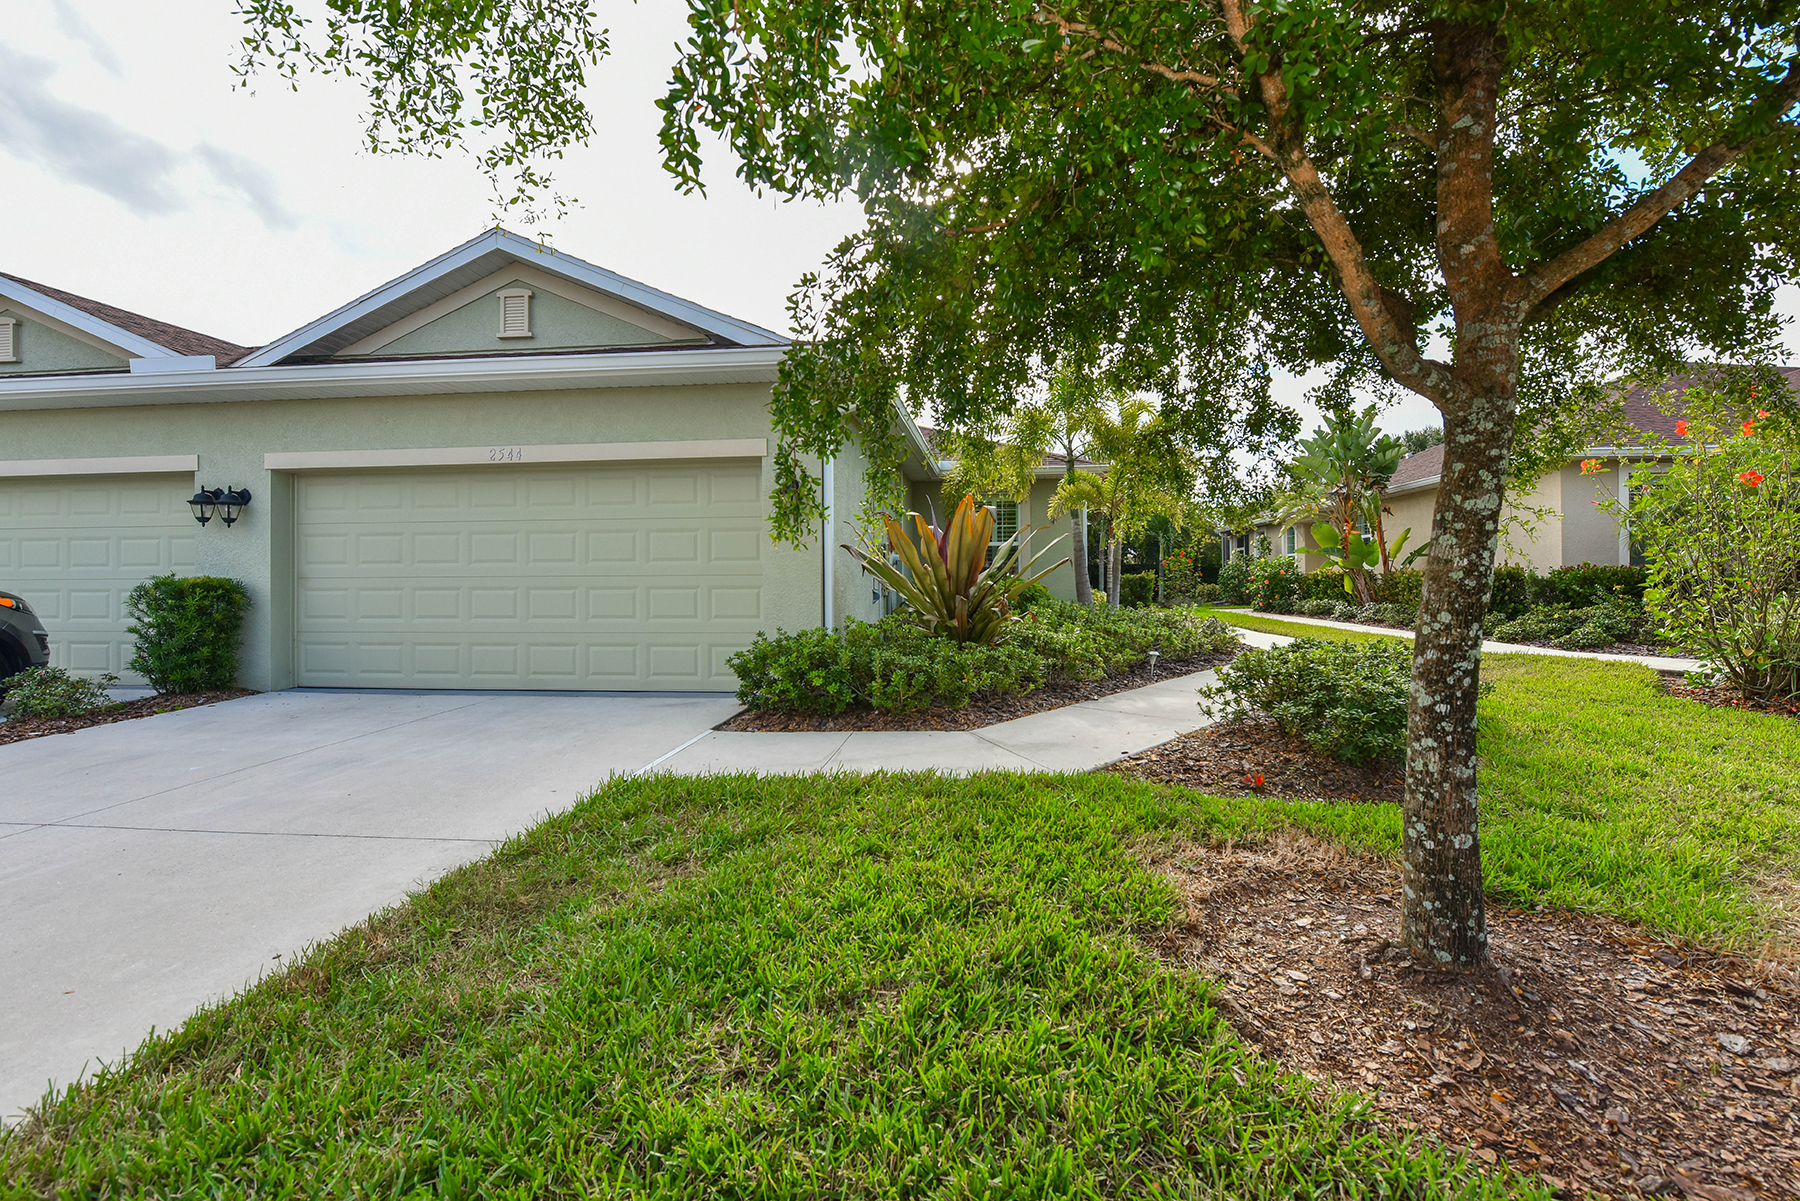 Townhouse for Sale at VERONA RESERVE 2544 Terracina Dr Venice, Florida, 34292 United States